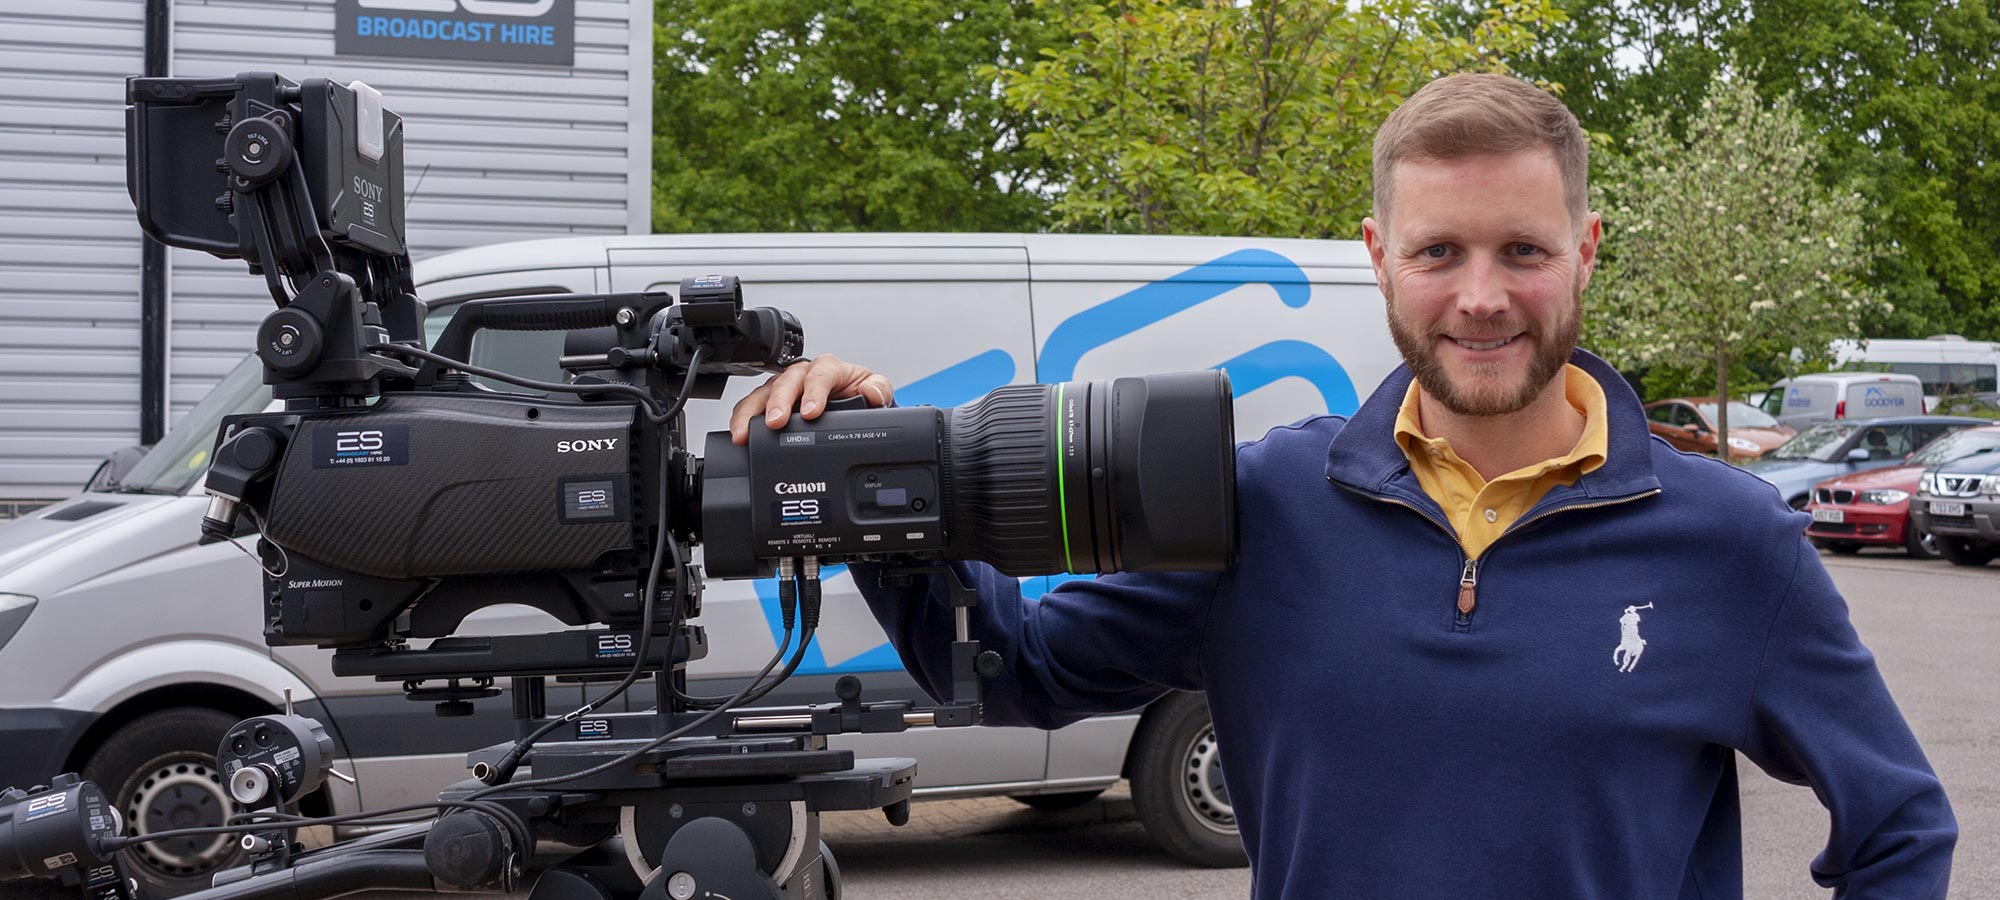 ES Broadcast CEO Edward Saunders with one of the Canon CJ45 lenses newly arrived at ES Broadcast Hire